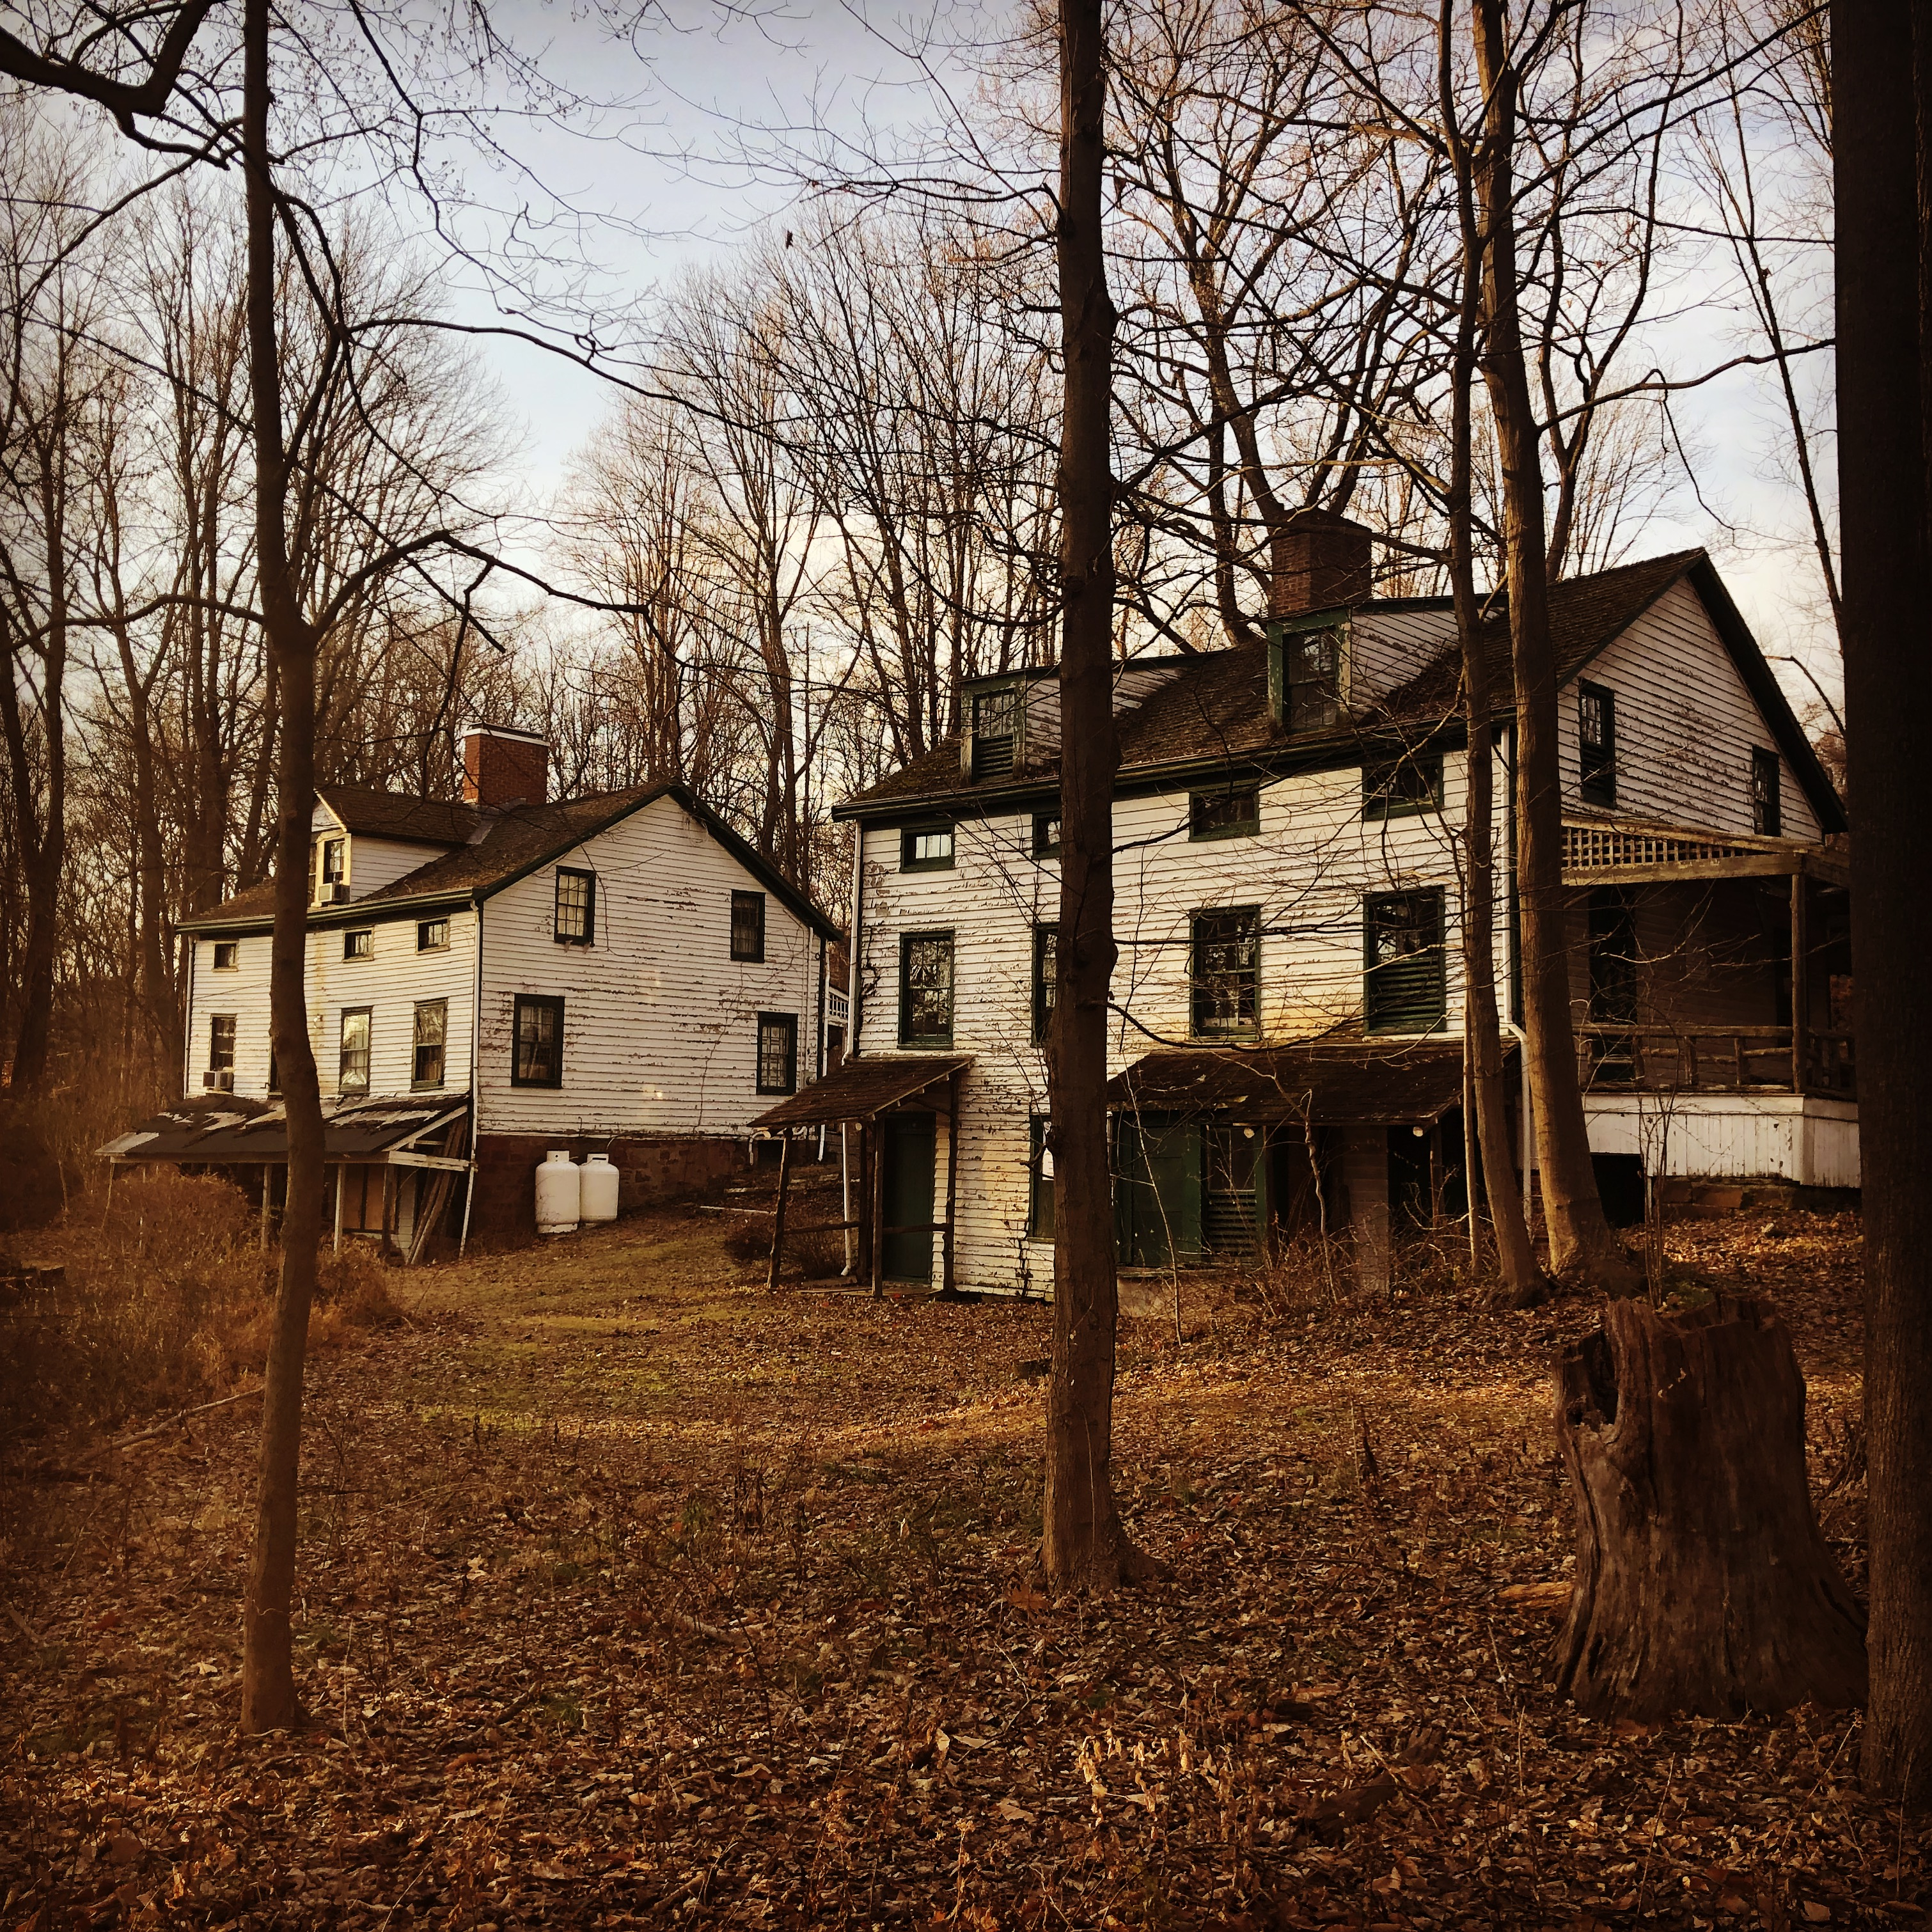 A Deserted Utopian Village in a New Jersey Forest on